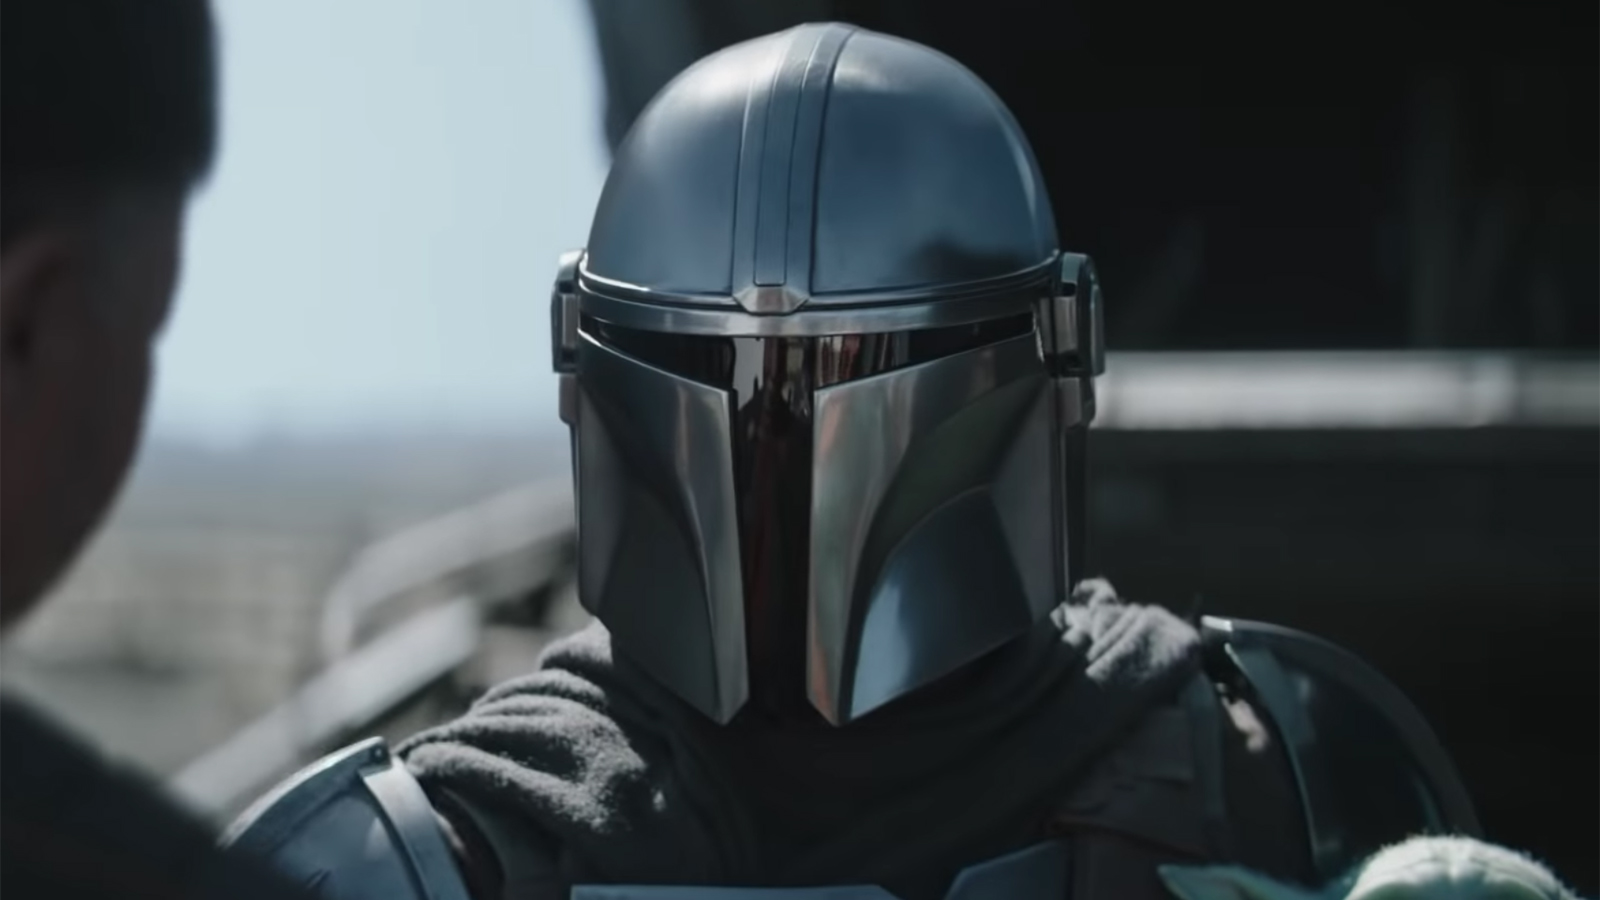 Mando in The Mandalorian season 2